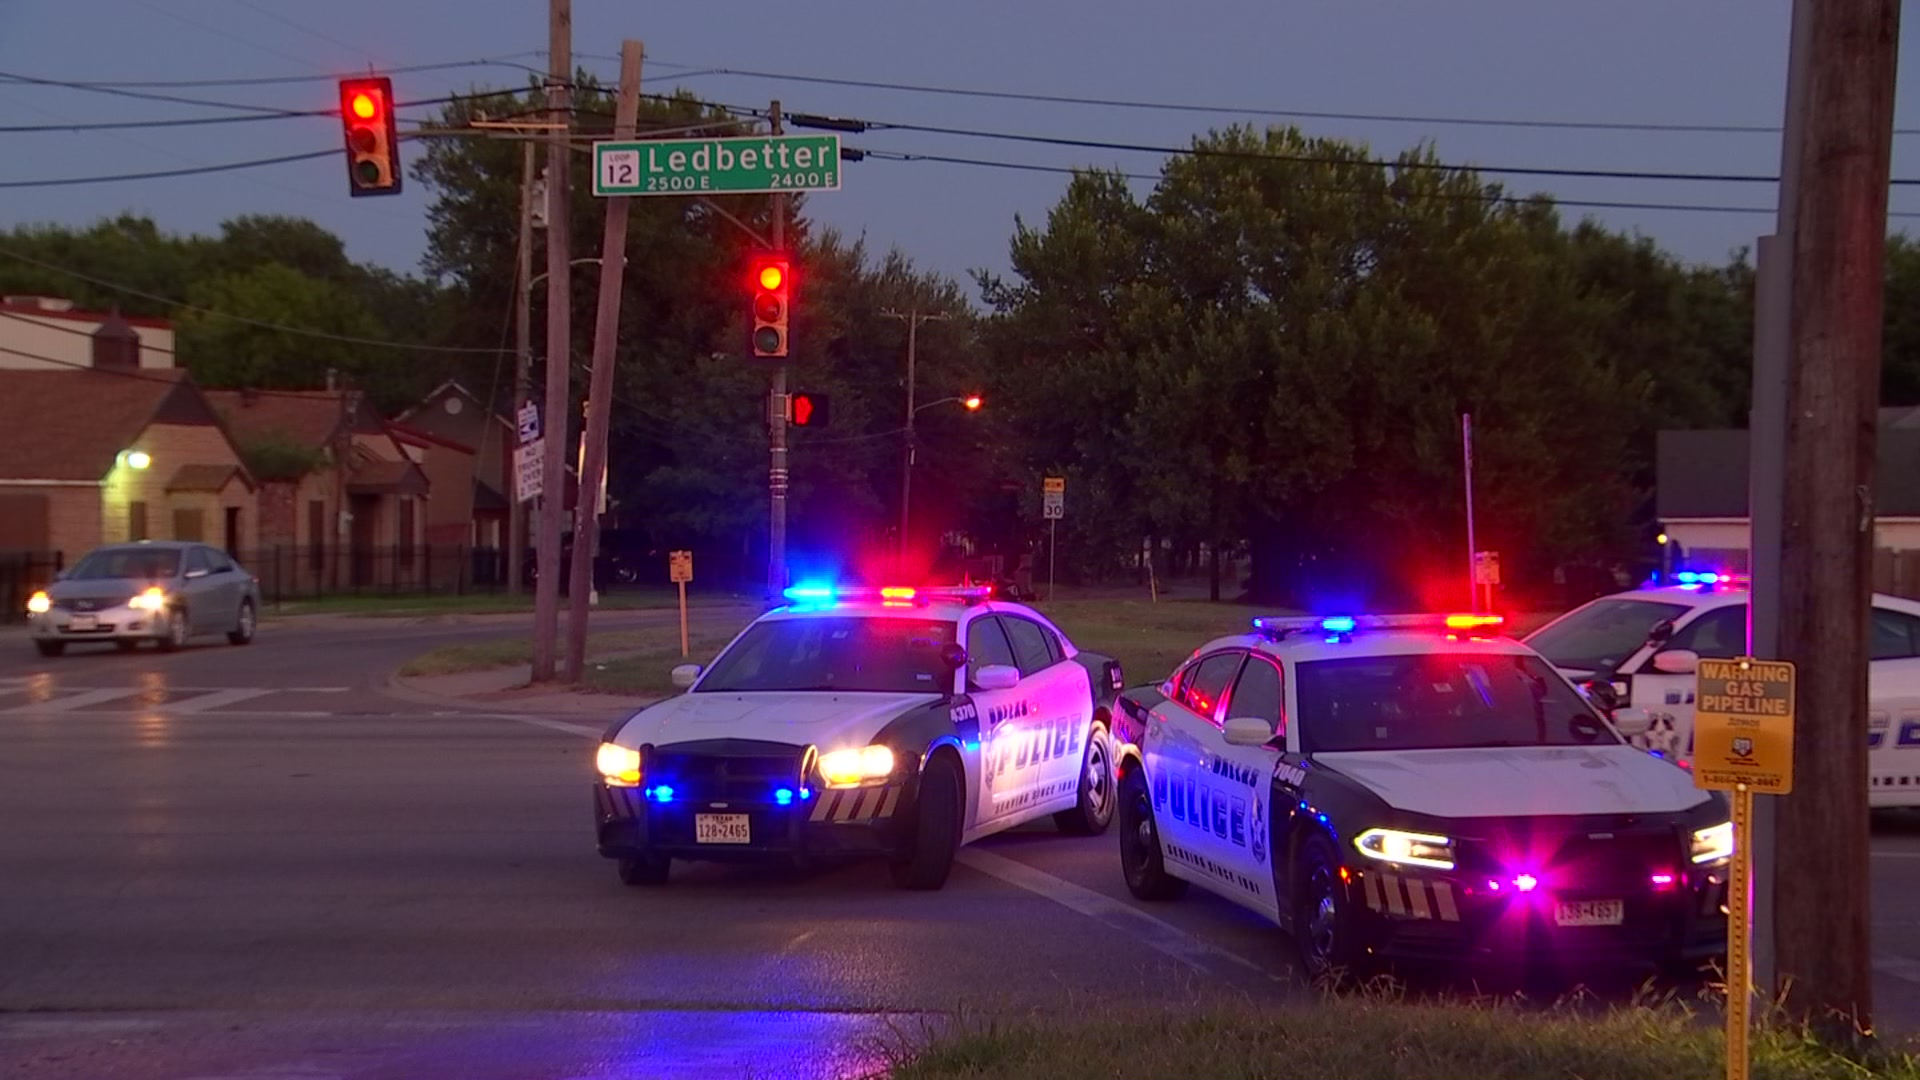 Driver Killed in Wrong-Way Crash in Dallas